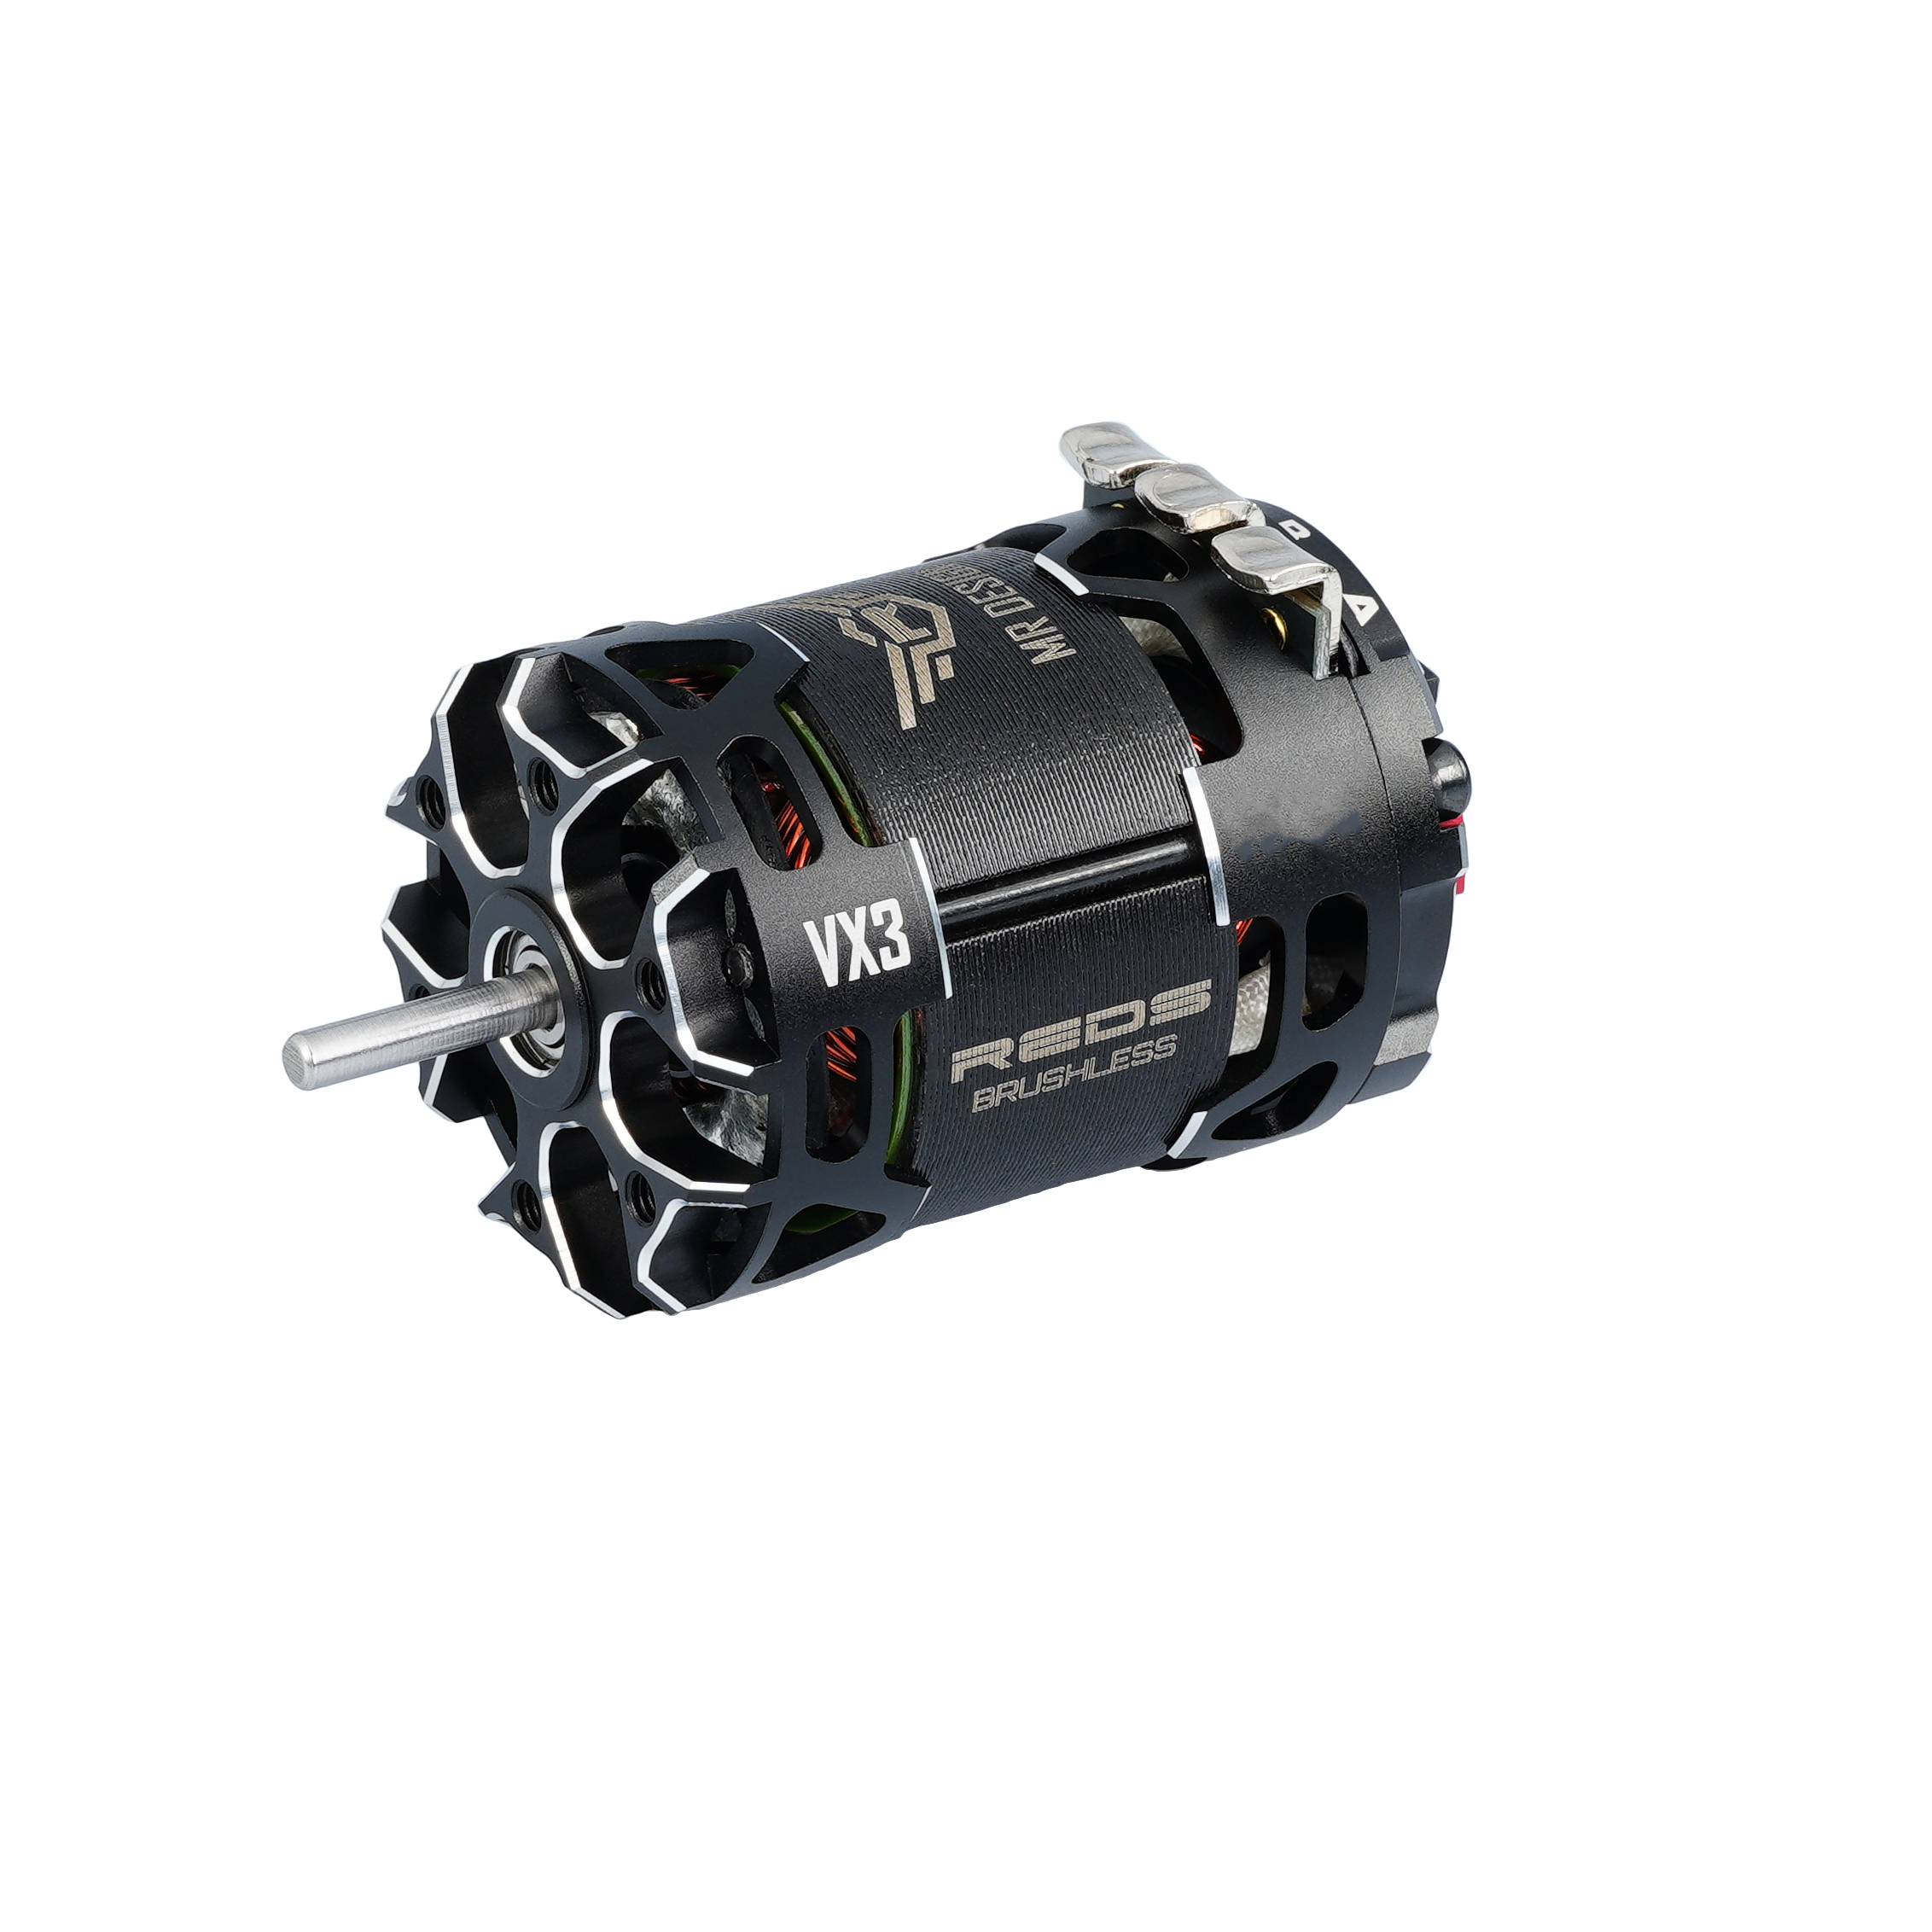 REDS VX3 540 4.5T 2 POLE SENSORED BRUSHLESS MOTOR